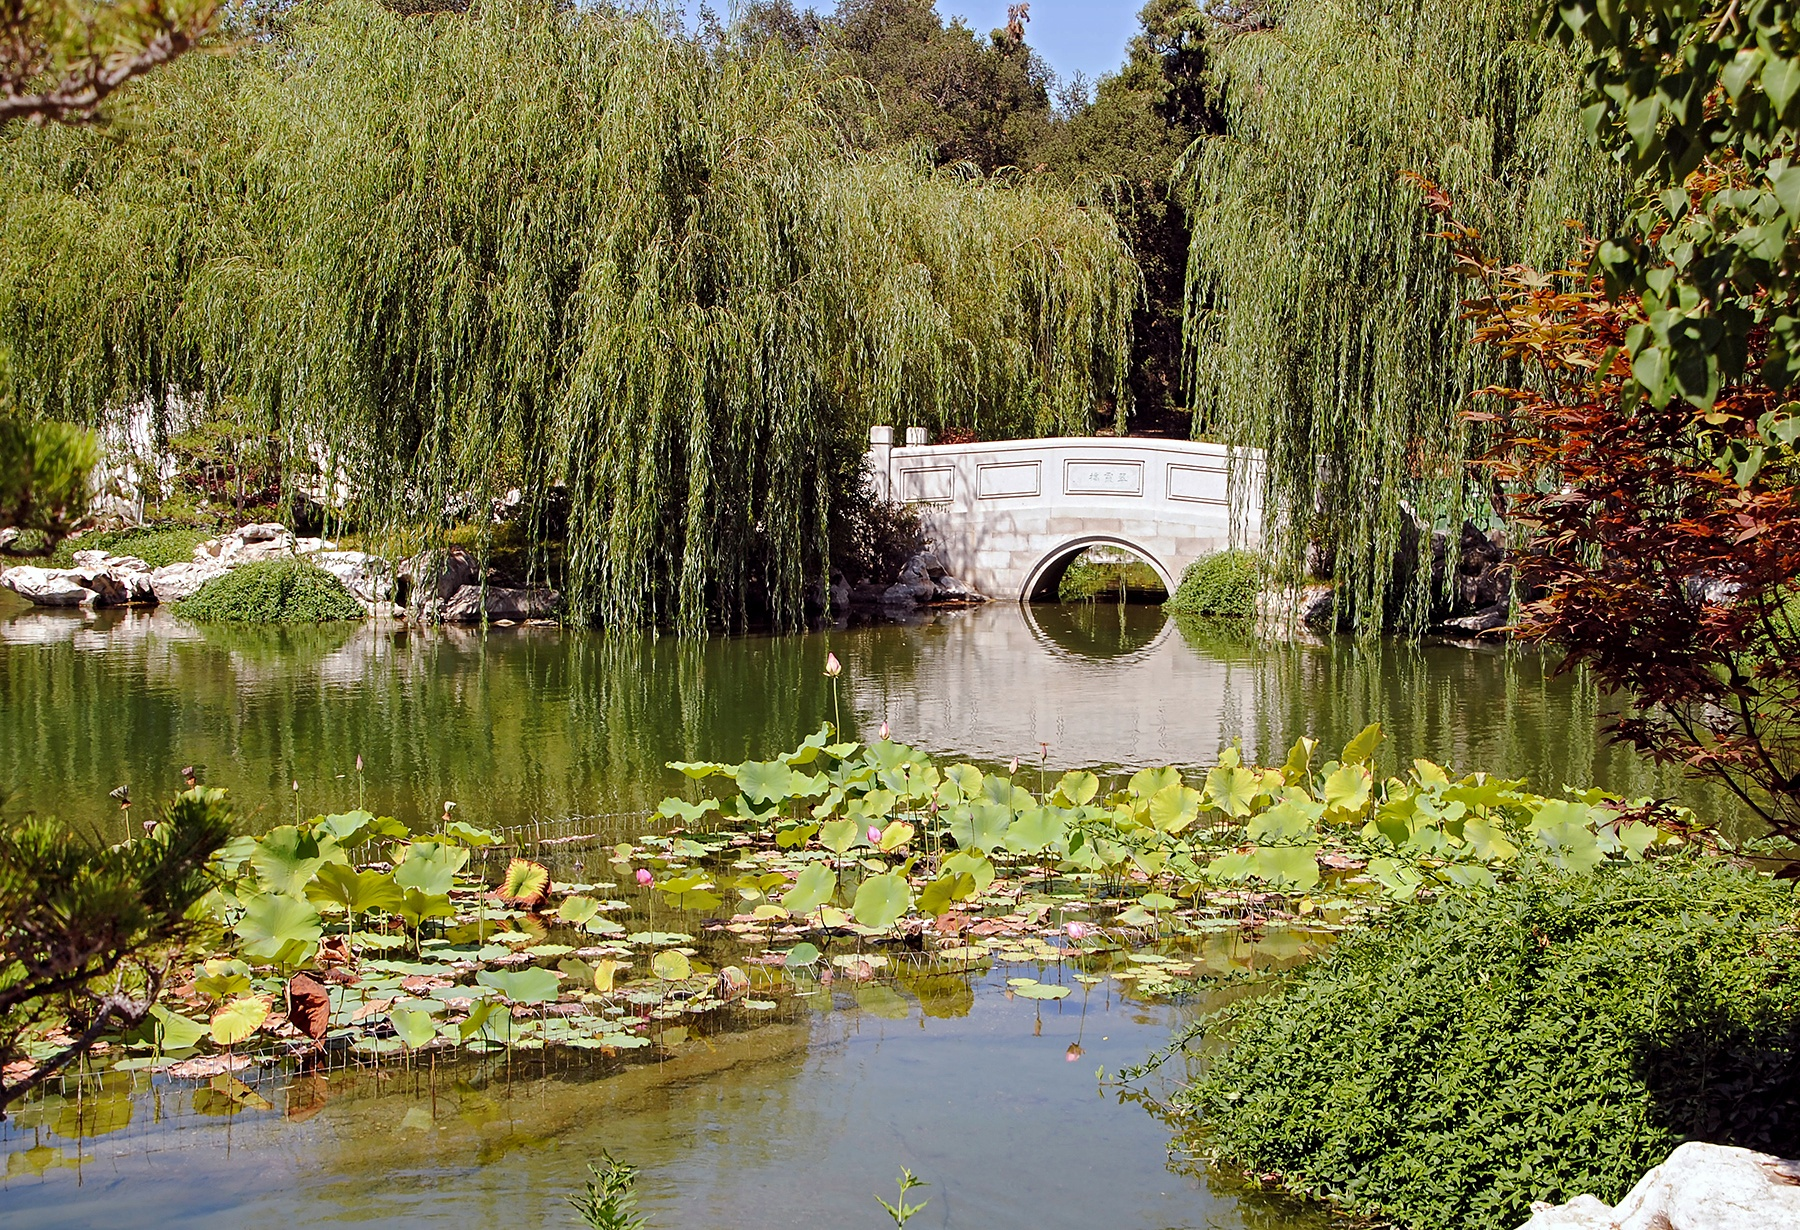 Chinese Garden Pond by Lormet-Images